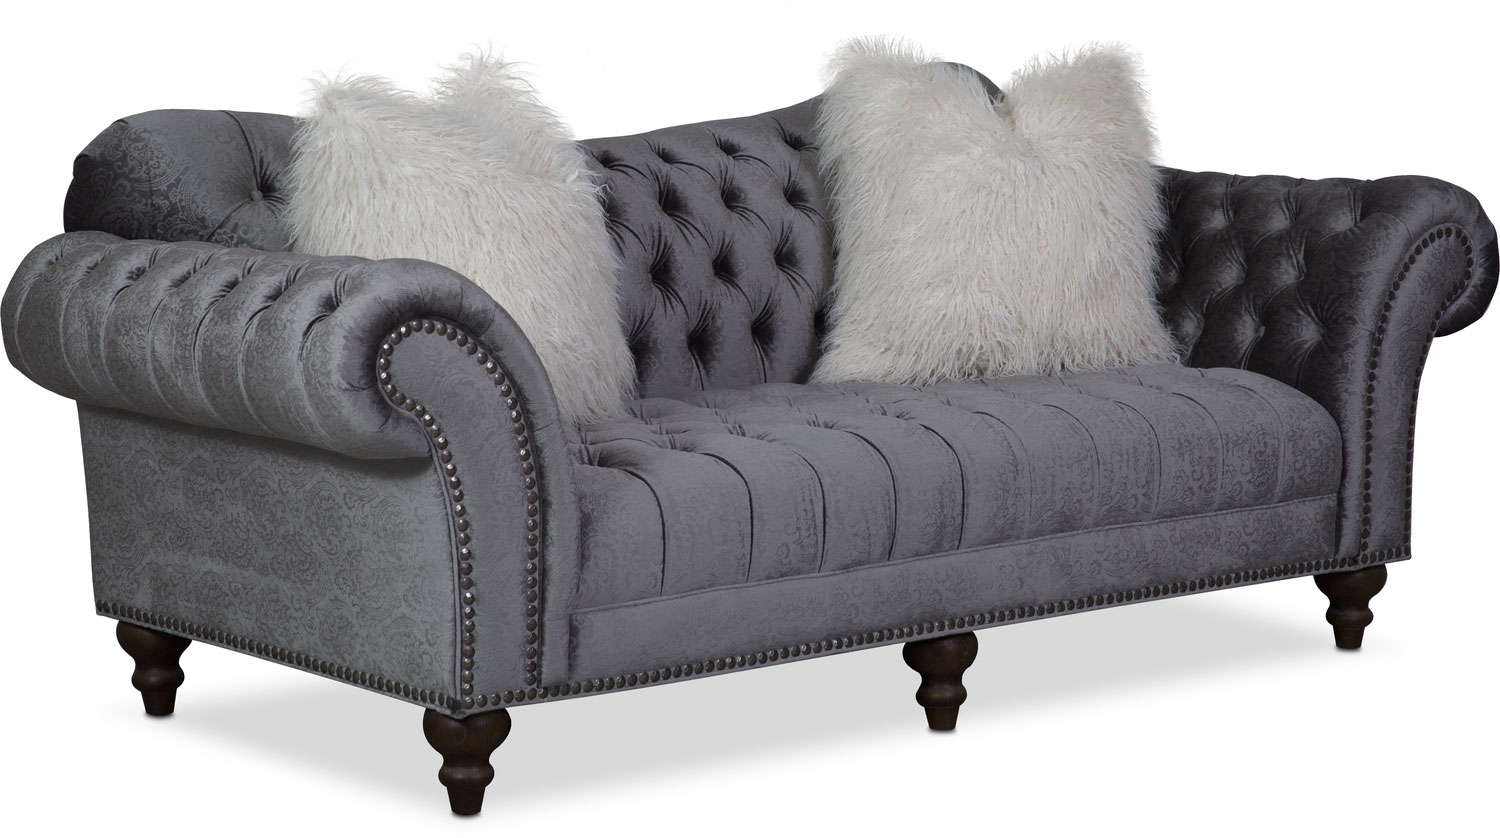 Living Room Furniture - Brittney Sofa